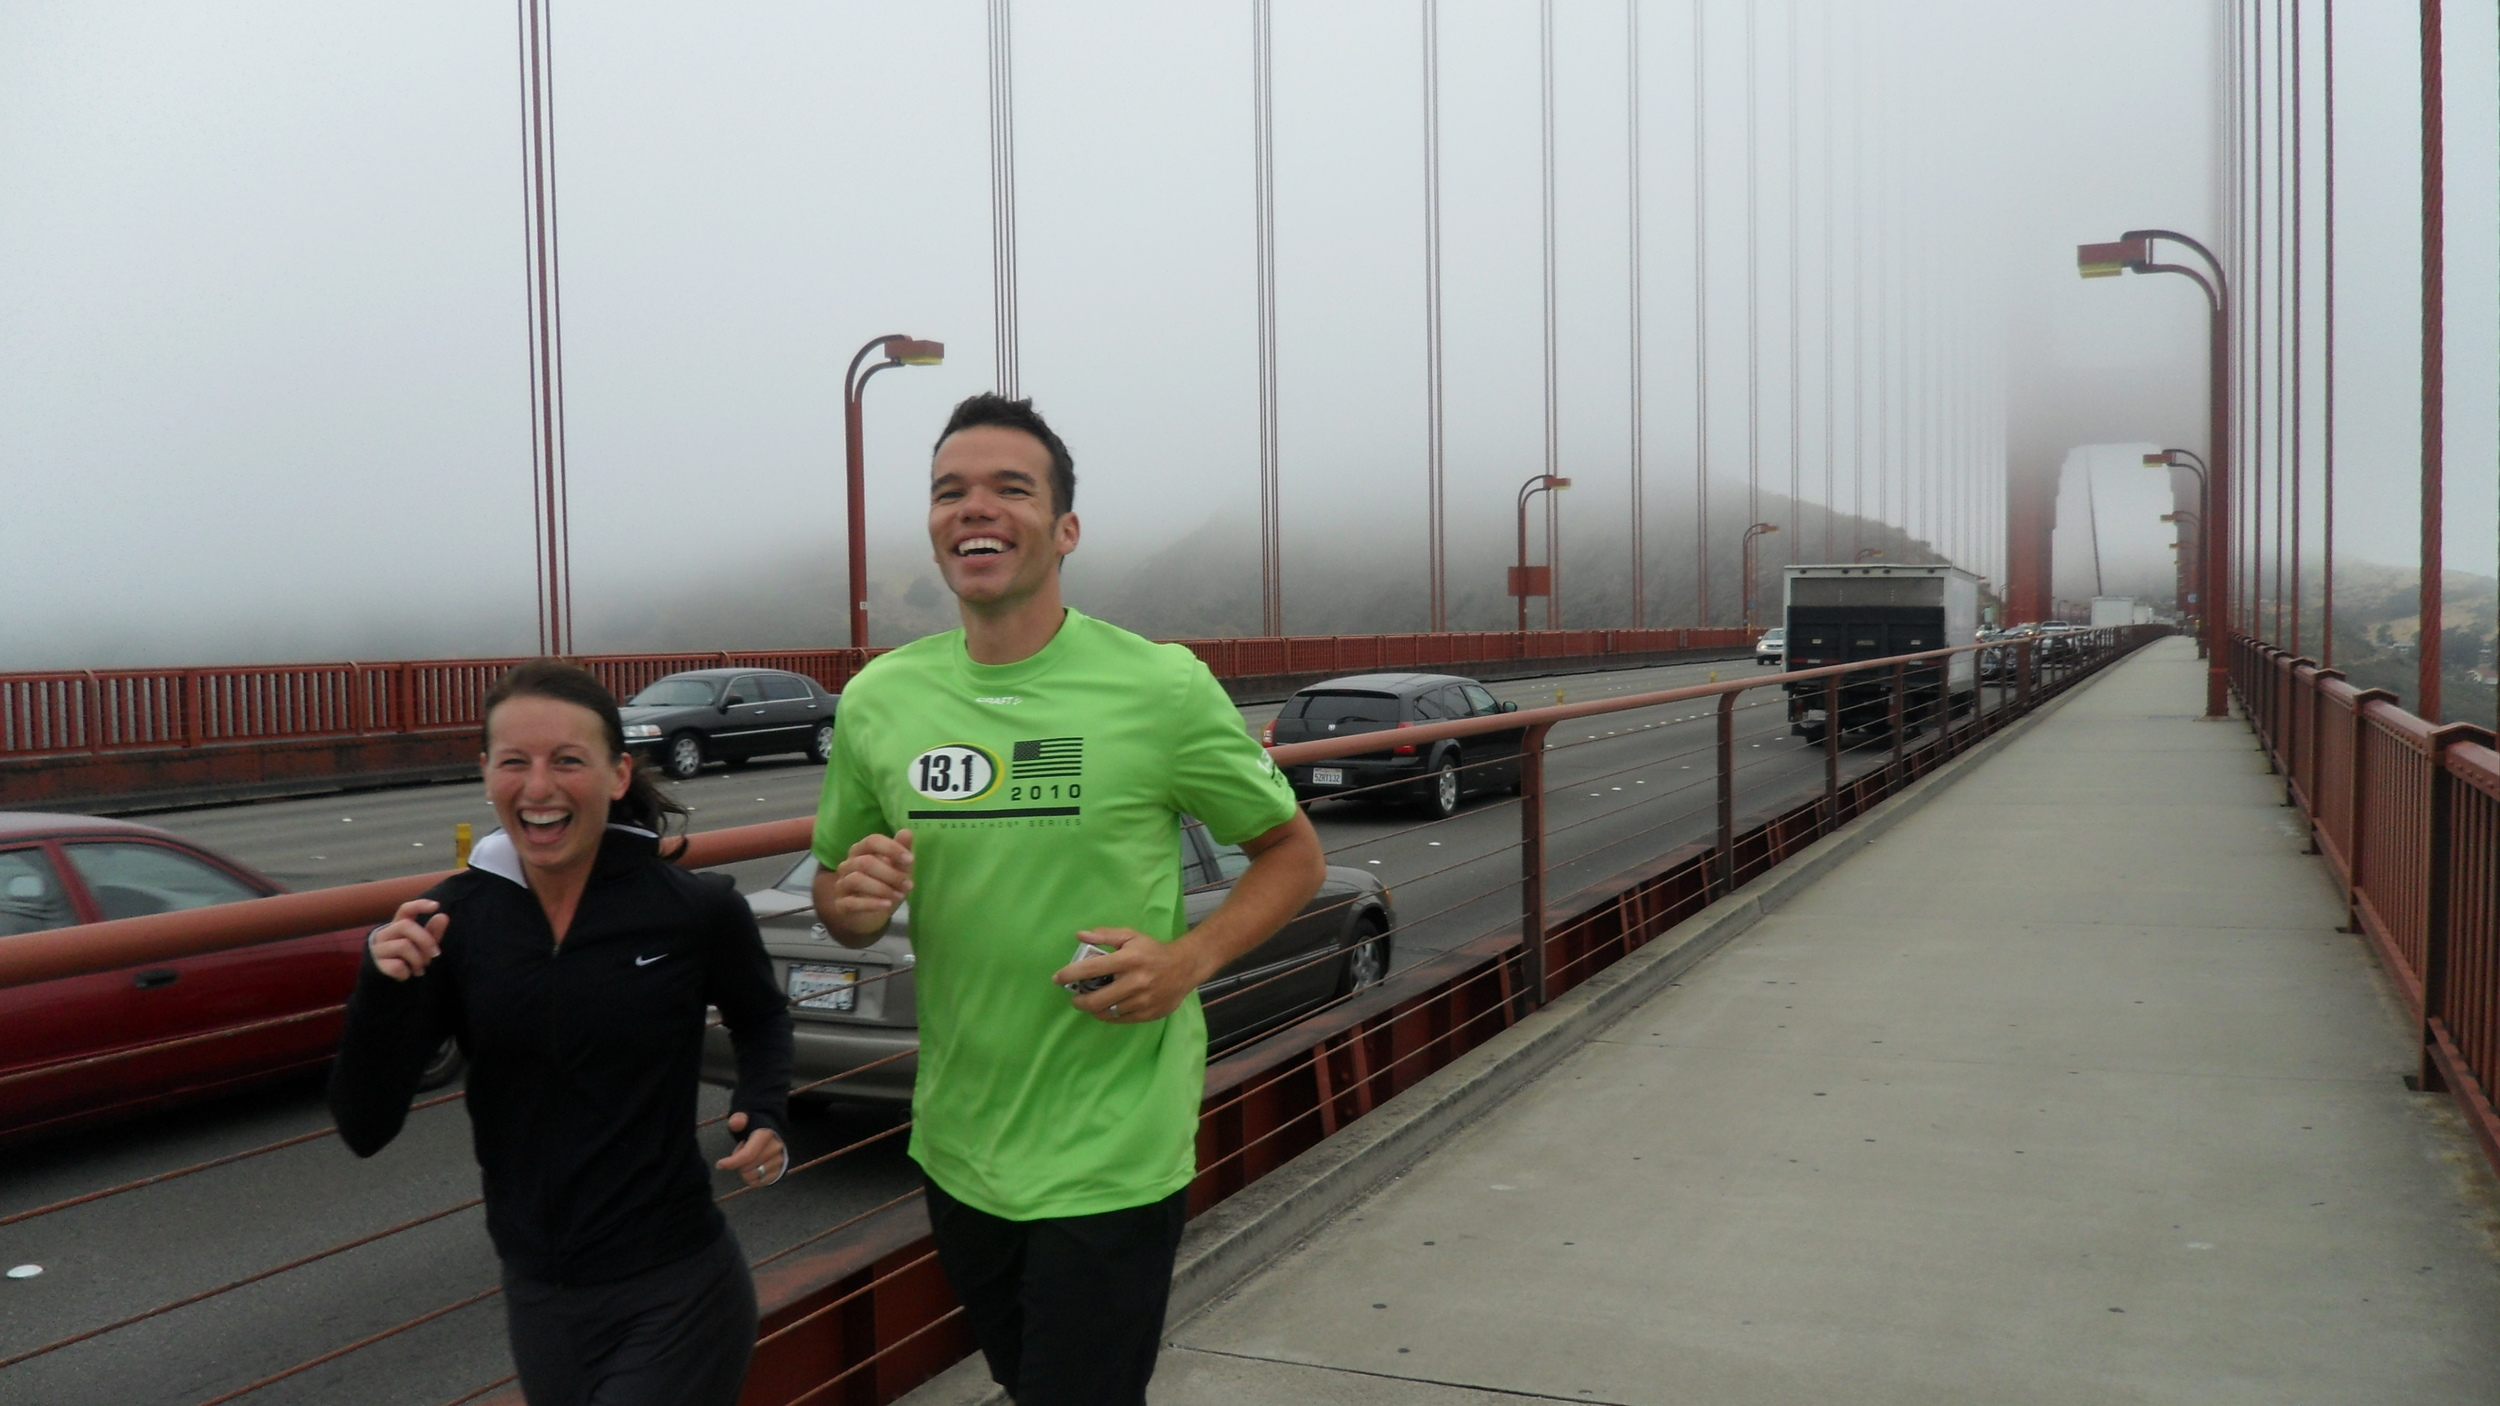 CREATE YOUR OWN SAN FRANCISCO RUNNING EXPERIENCE